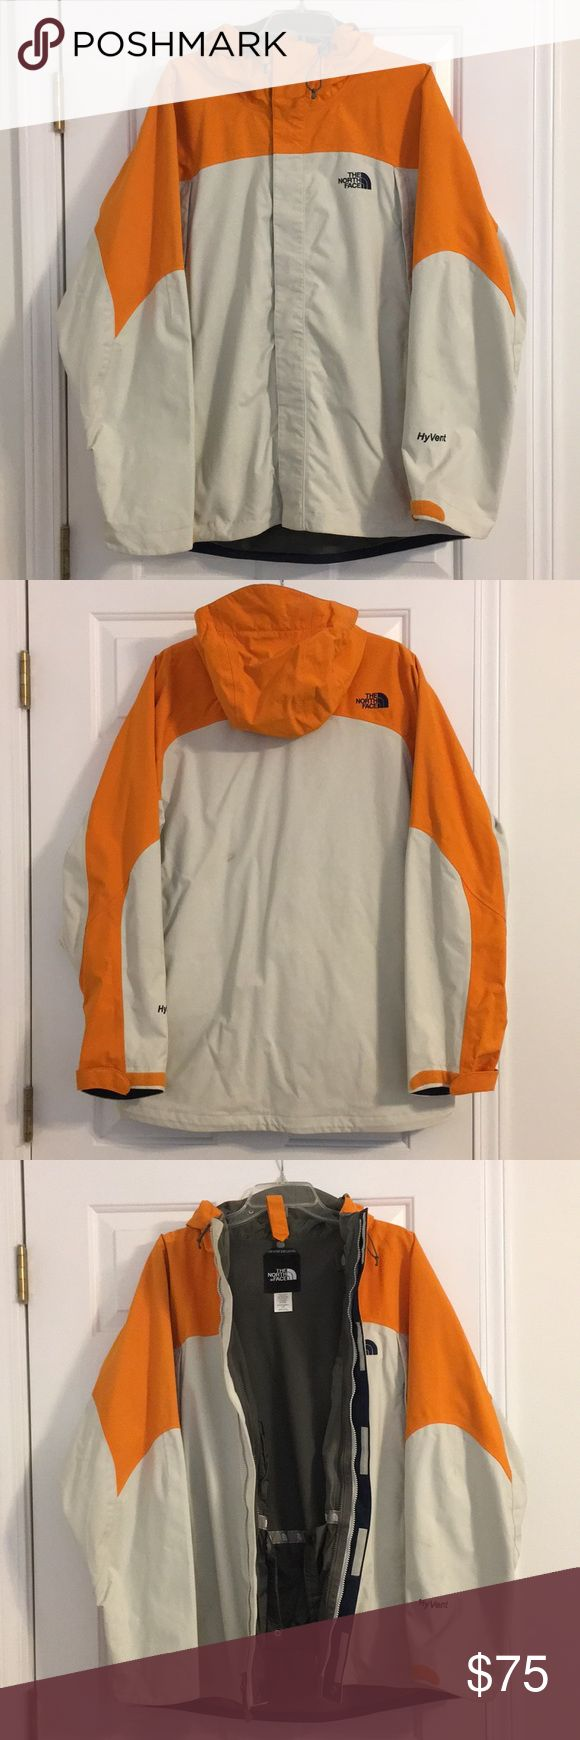 The North Face Men's Ski/Snowboard Jacket Tan and gray, lined jacket. HyVent technology. Good condition, some signs of wear (small stain on back of jacket, see picture). The North Face Jackets & Coats Ski & Snowboard